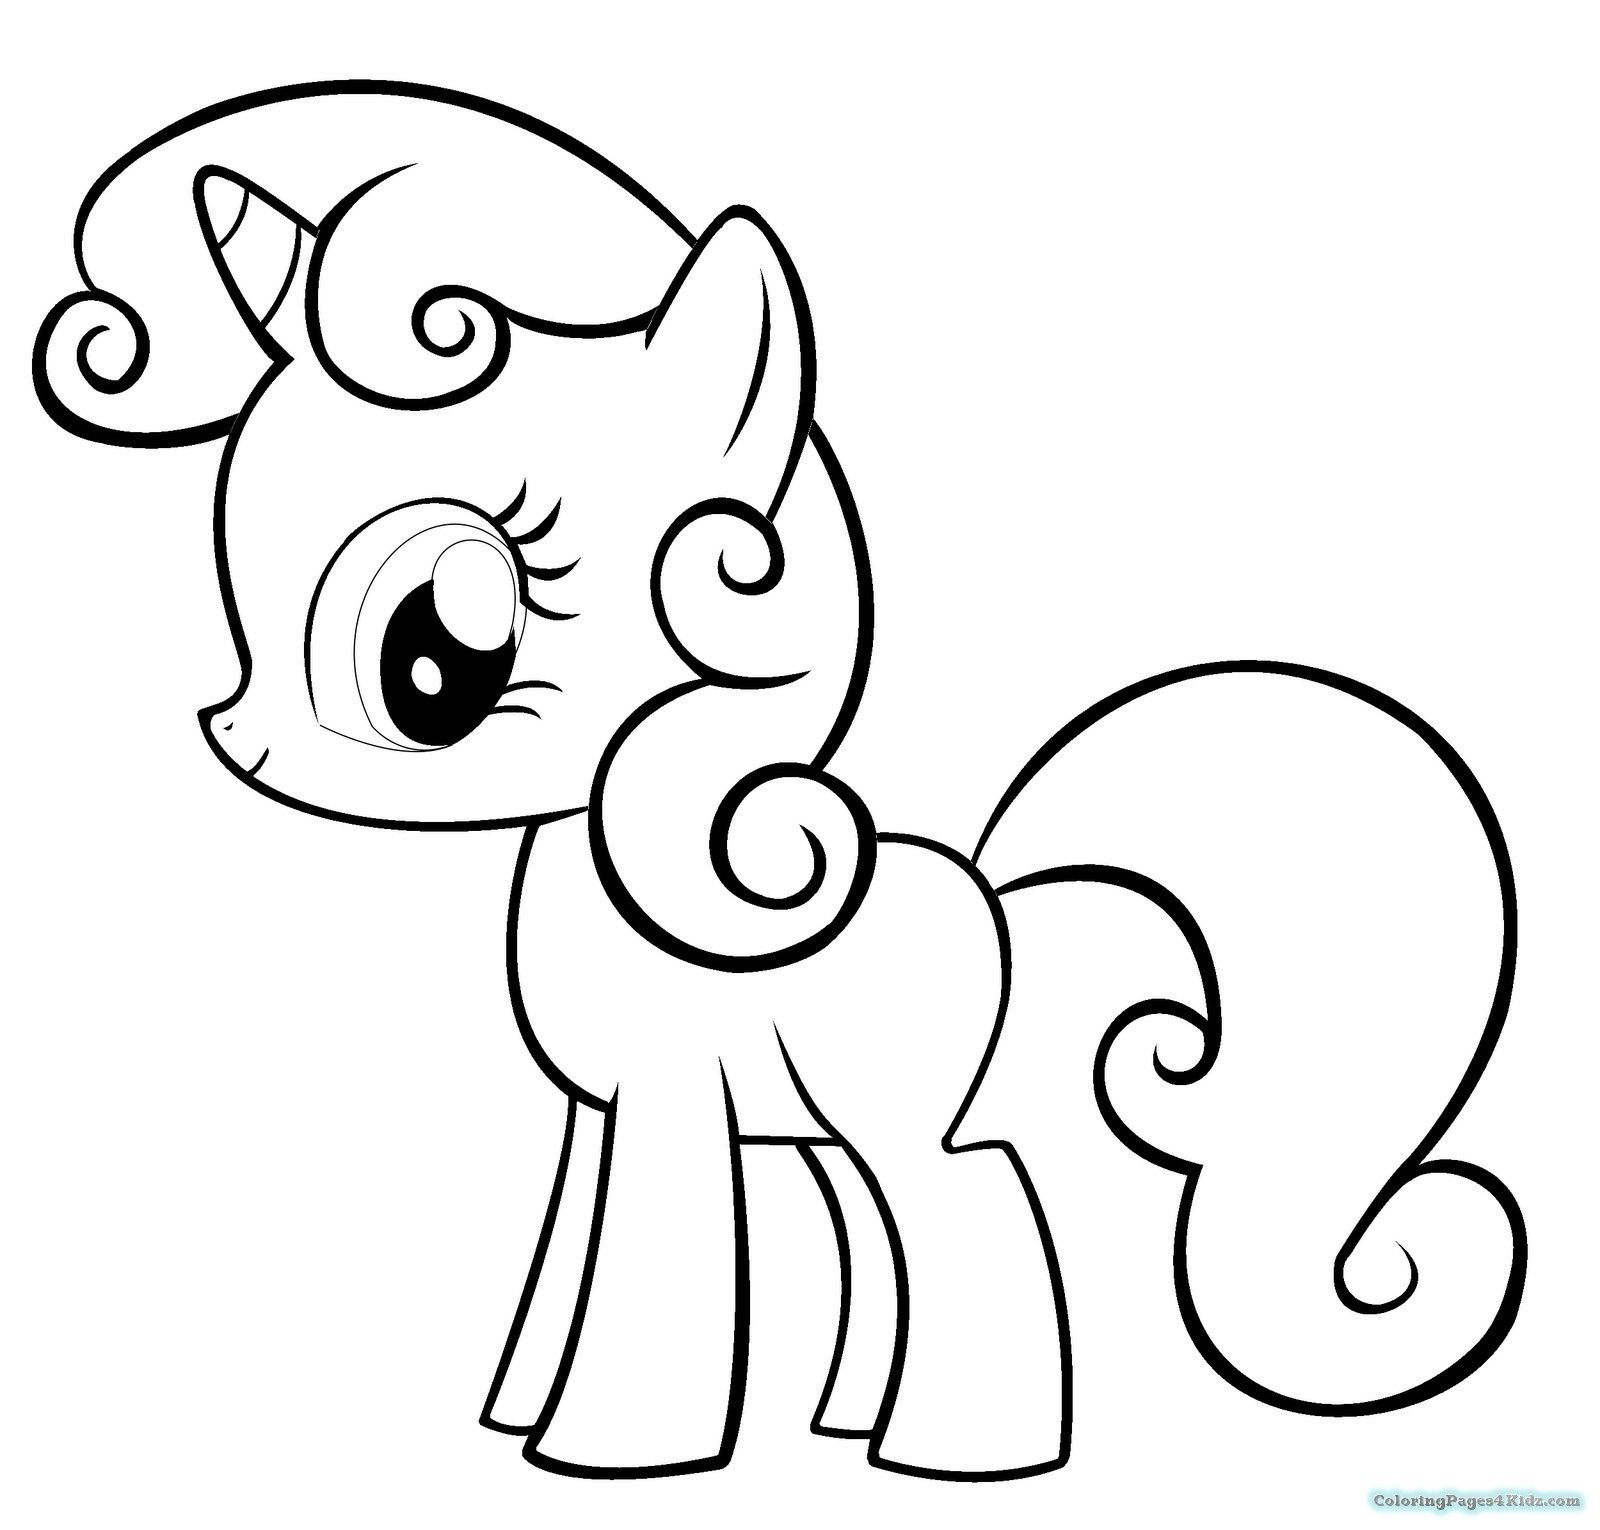 Pony Coloring Cool Photography My Little Pony Coloring Pages Collection Thephotosync My Little Pony Coloring My Little Pony Drawing Pony Drawing